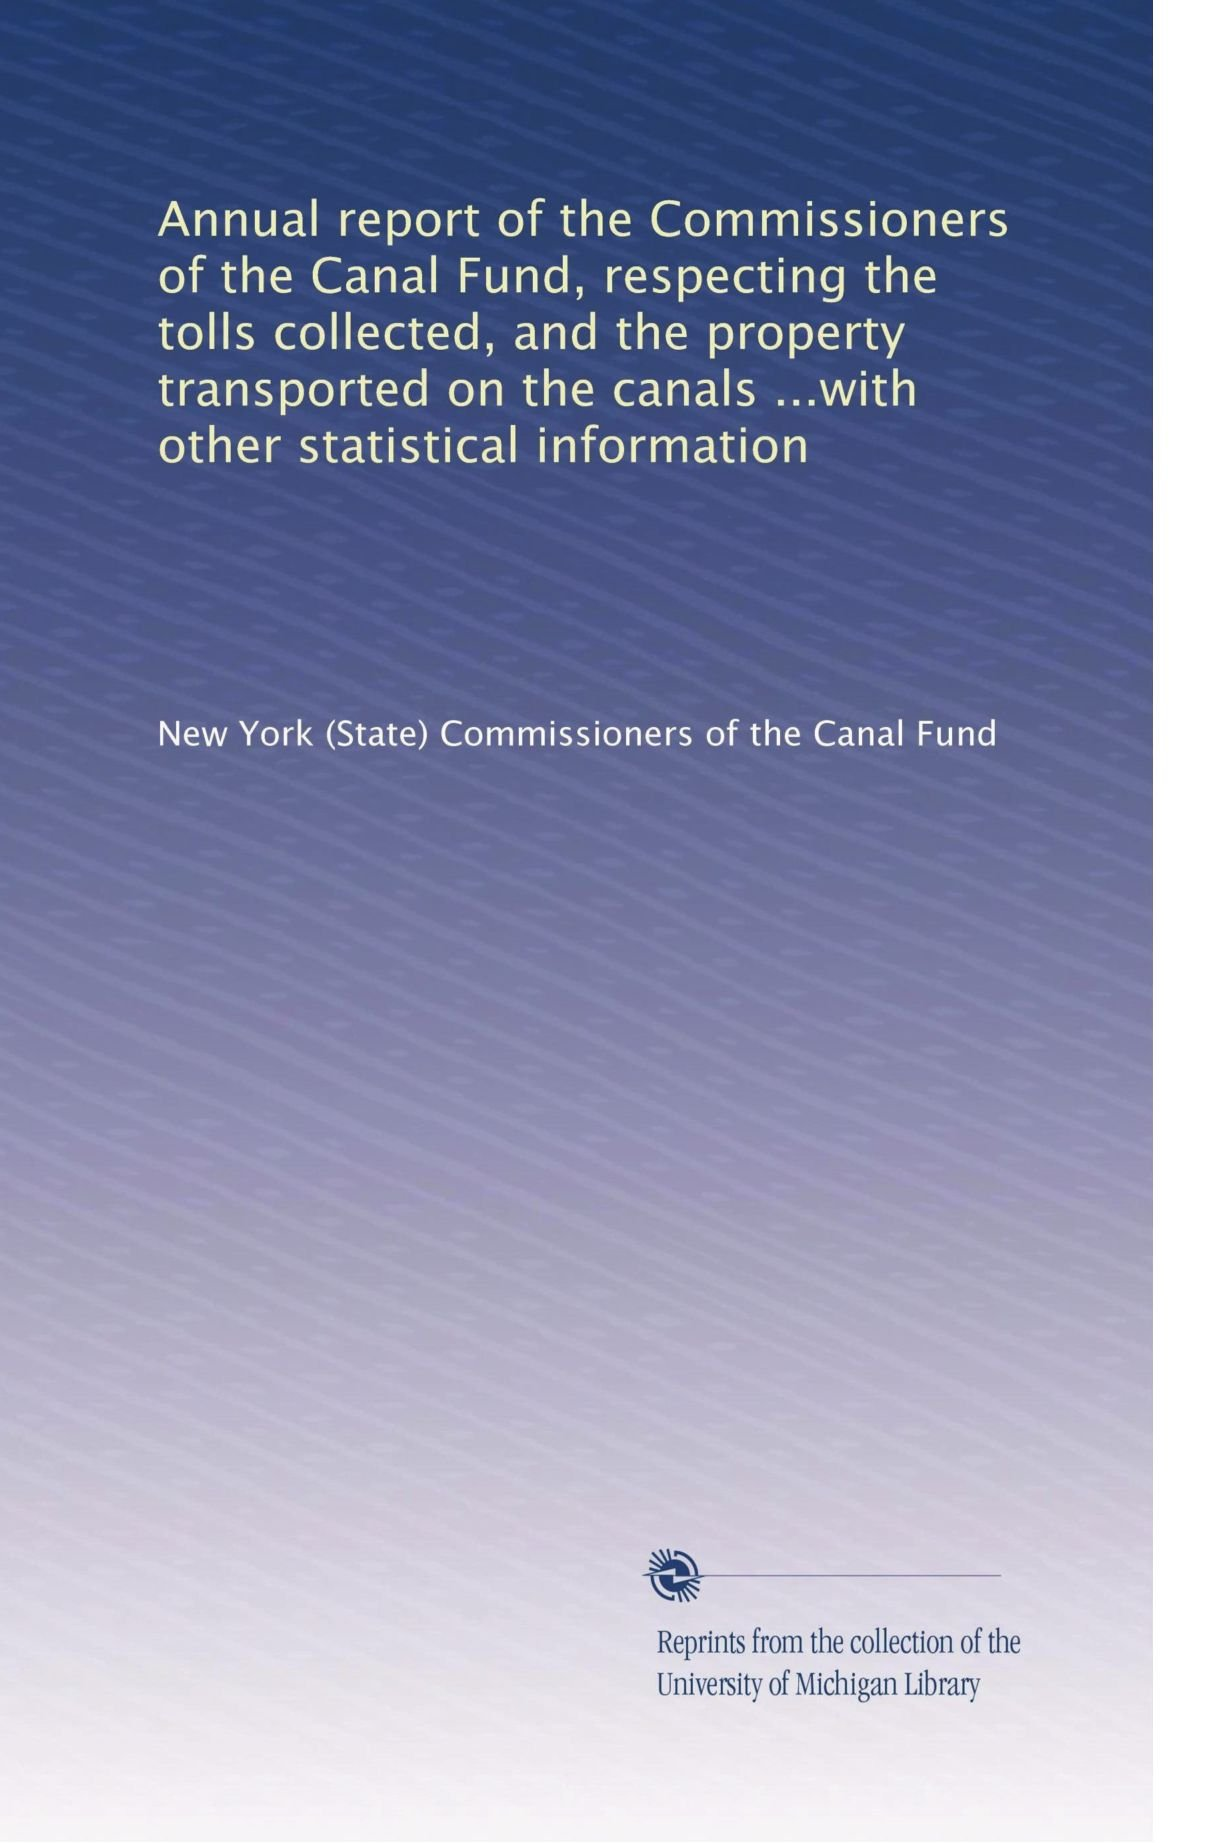 Download Annual report of the Commissioners of the Canal Fund, respecting the tolls collected, and the property transported on the canals ...with other statistical information (Volume 3) pdf